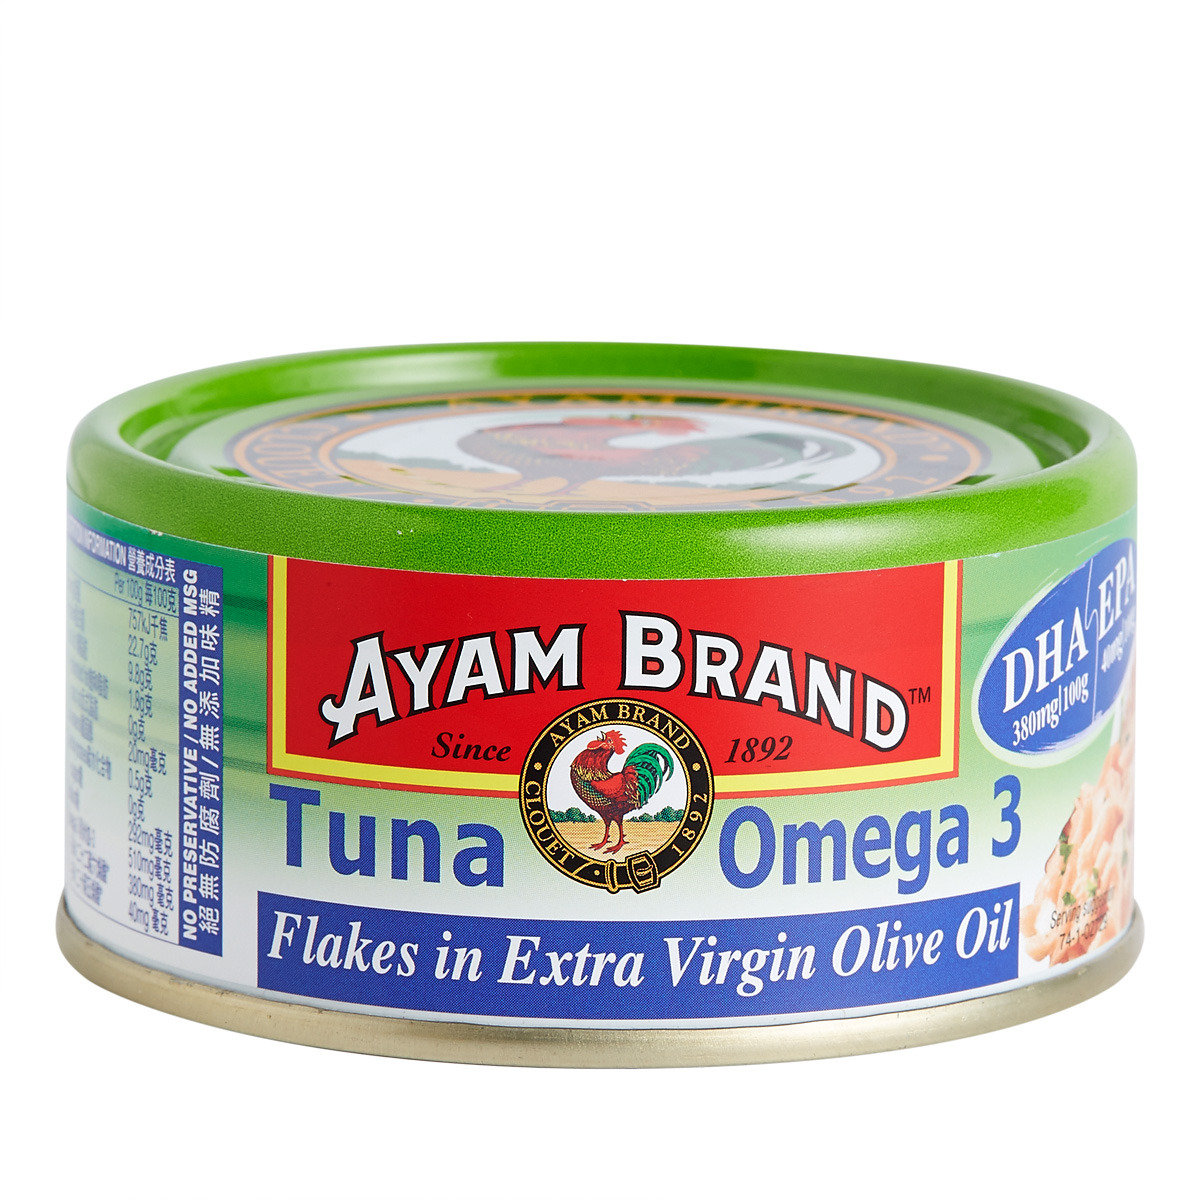 Tuna Omega 3 Flakes in Extra Virgin Olive Oil